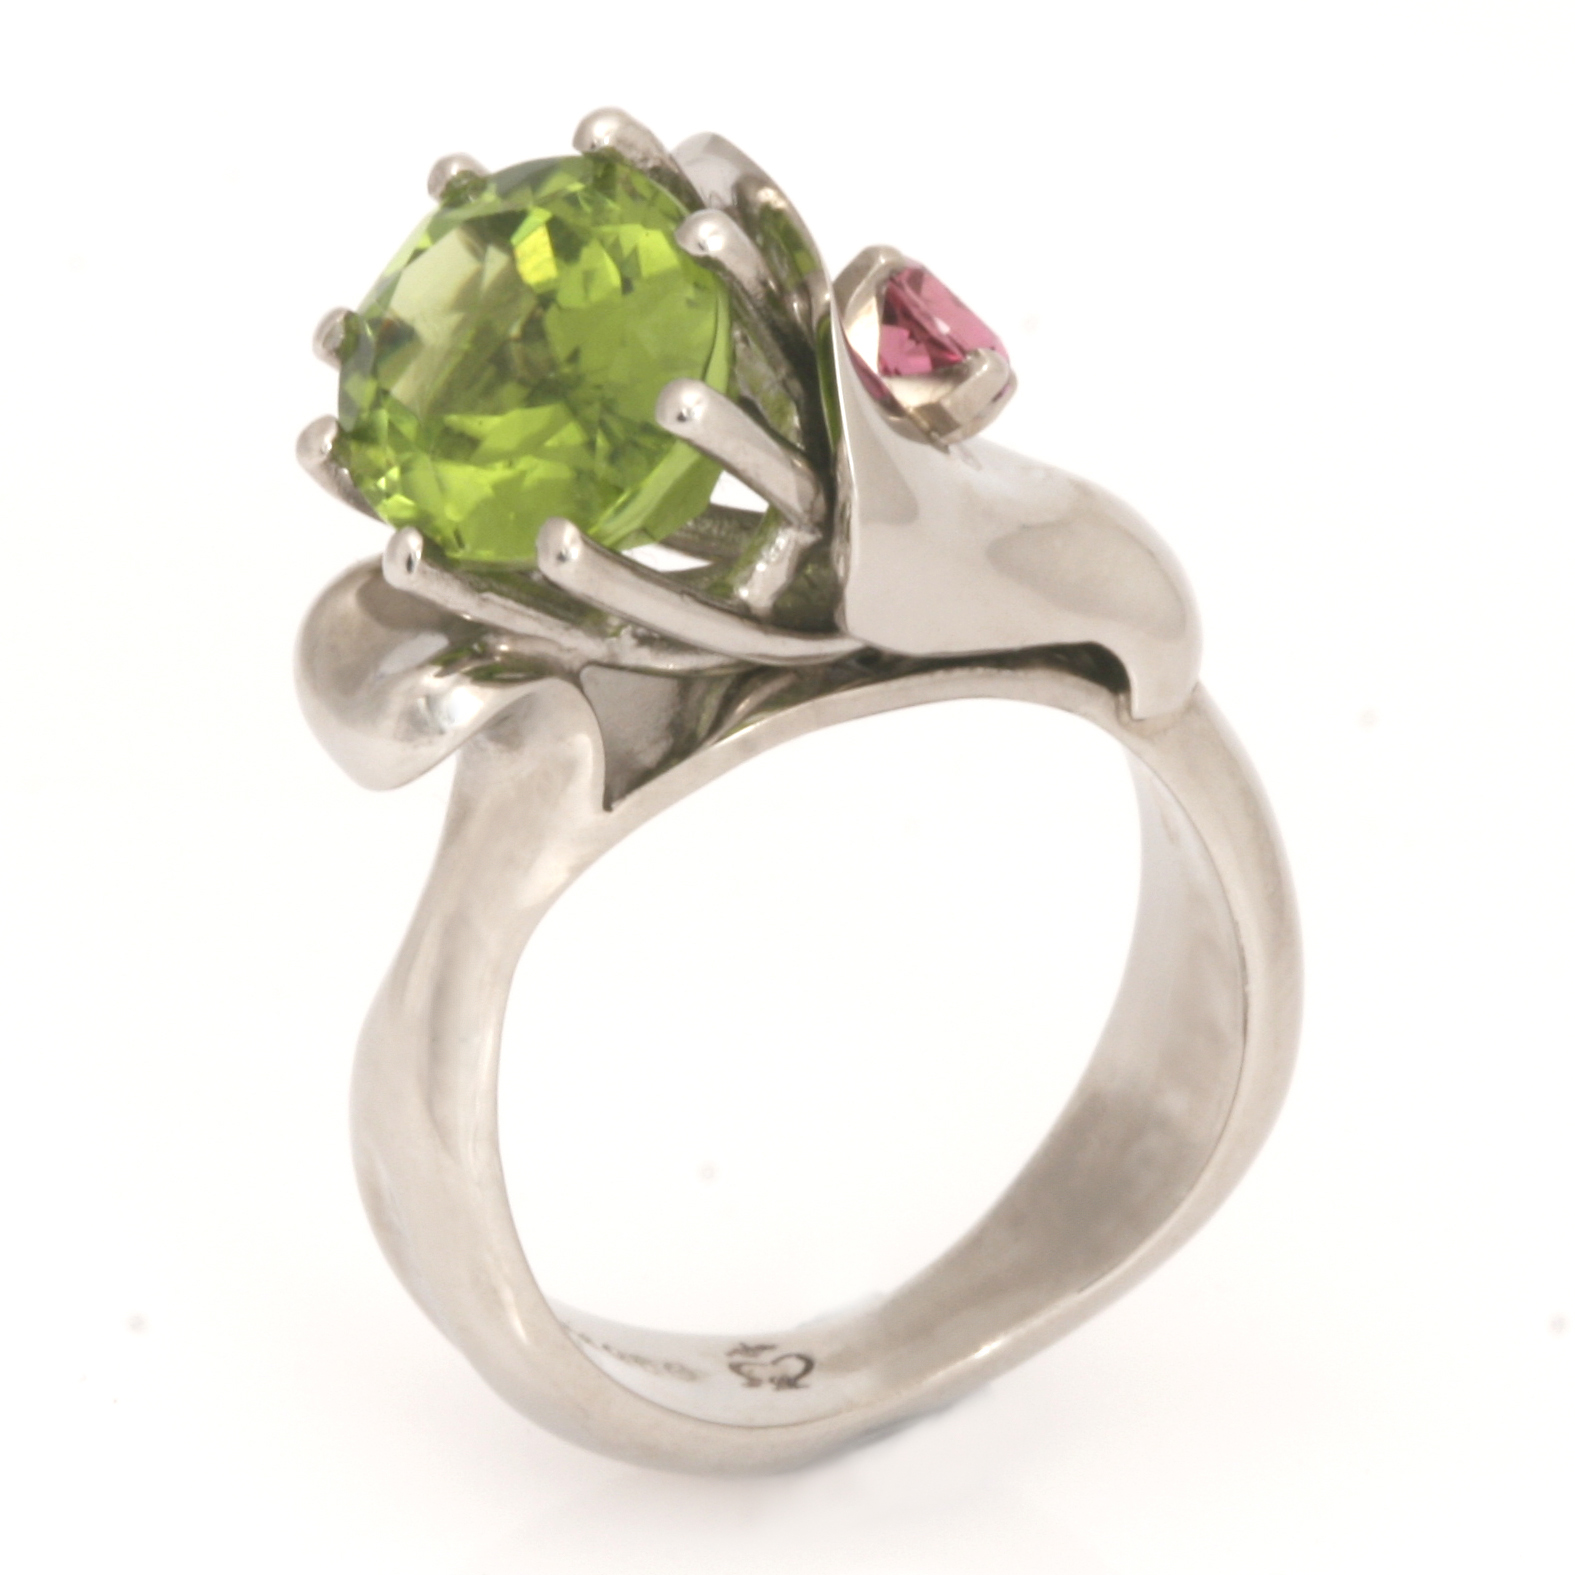 "R150 – palladium bonsai ring with 4.35ct oval peridot and 4mm round pink tourmaline set in a 9ct white gold setting 10.11 grams finger size ""M"" $2840"